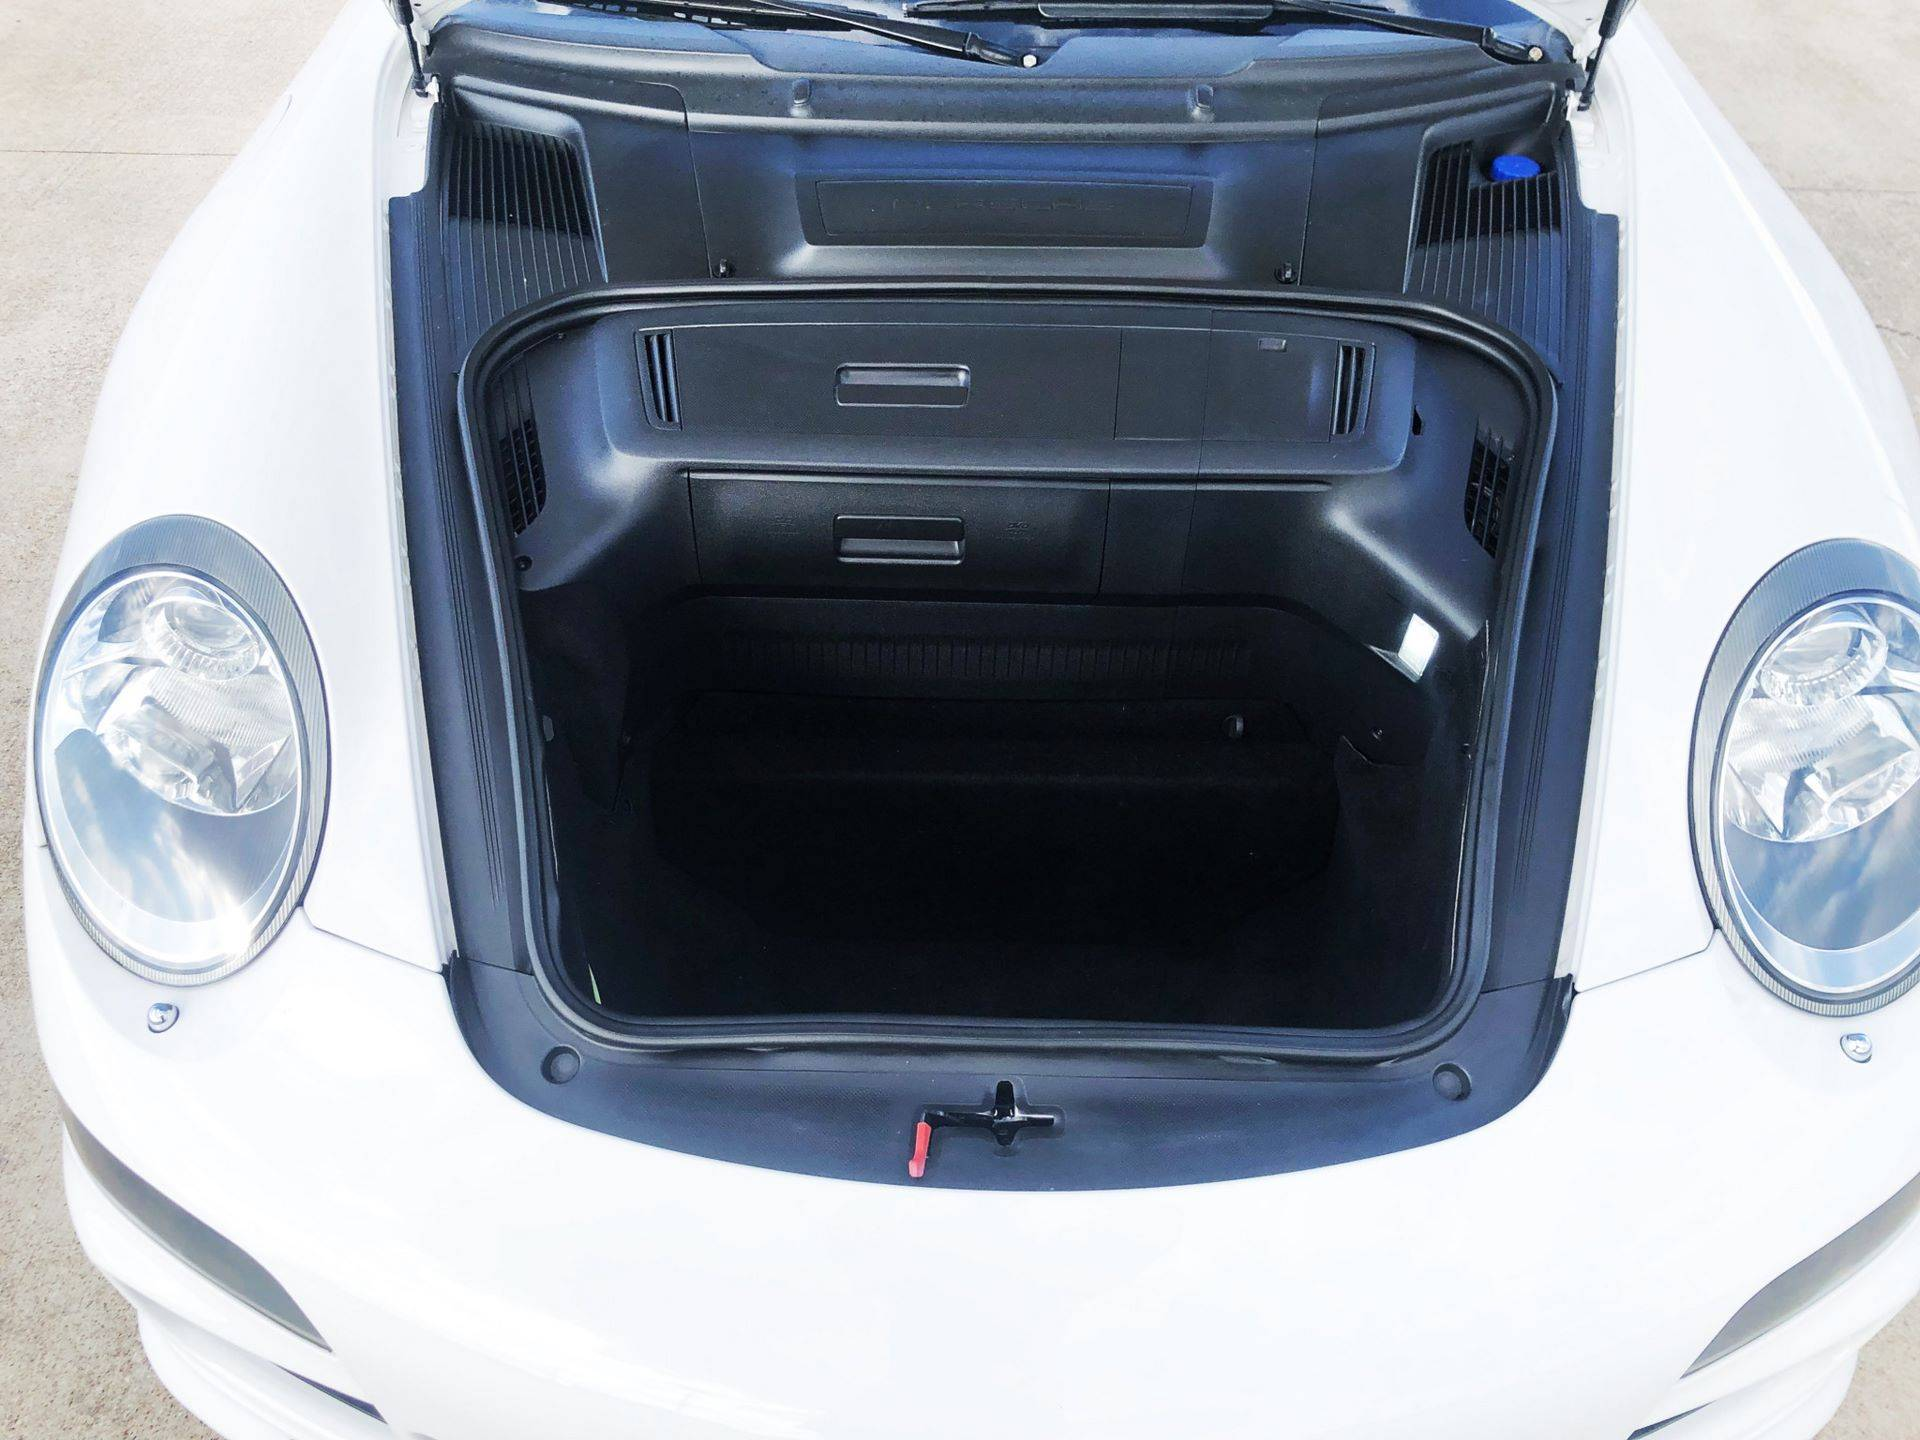 Center-Seat-Porsche-911-Carrera-S-2008-50